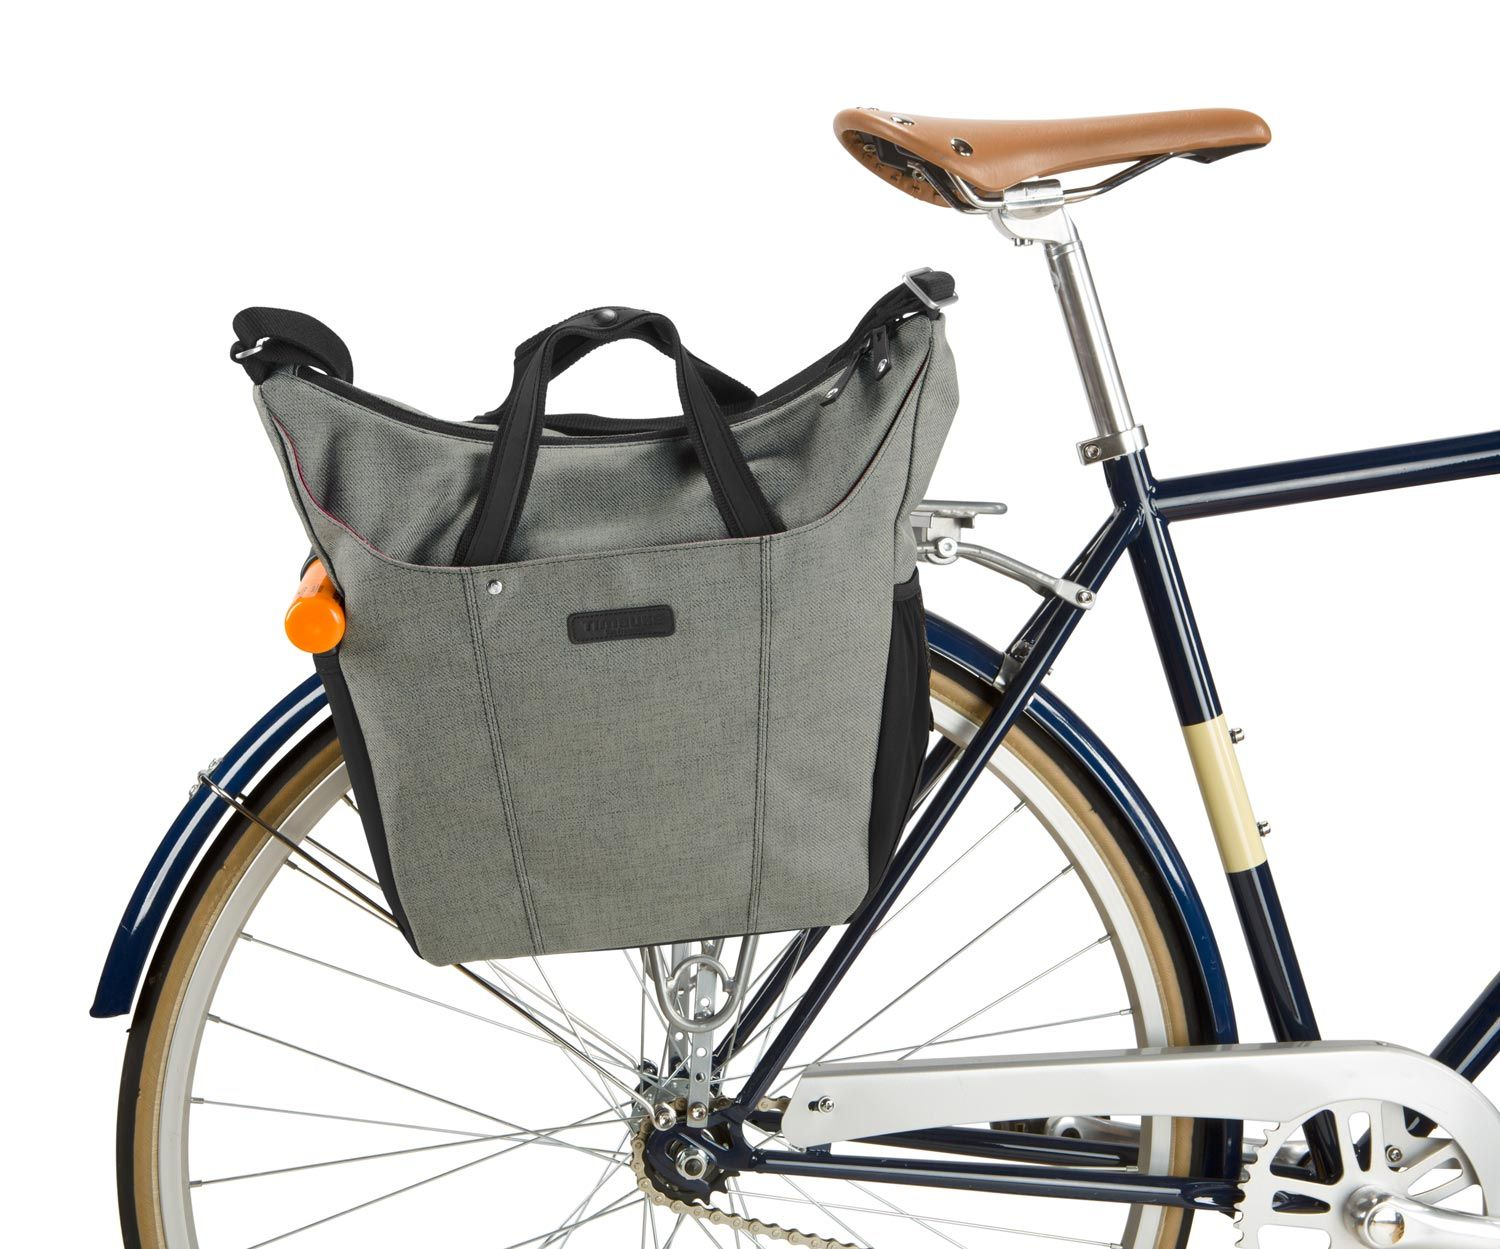 Bike Bags Cycle Gear Bicycle Accessories Carriers Timbuk2